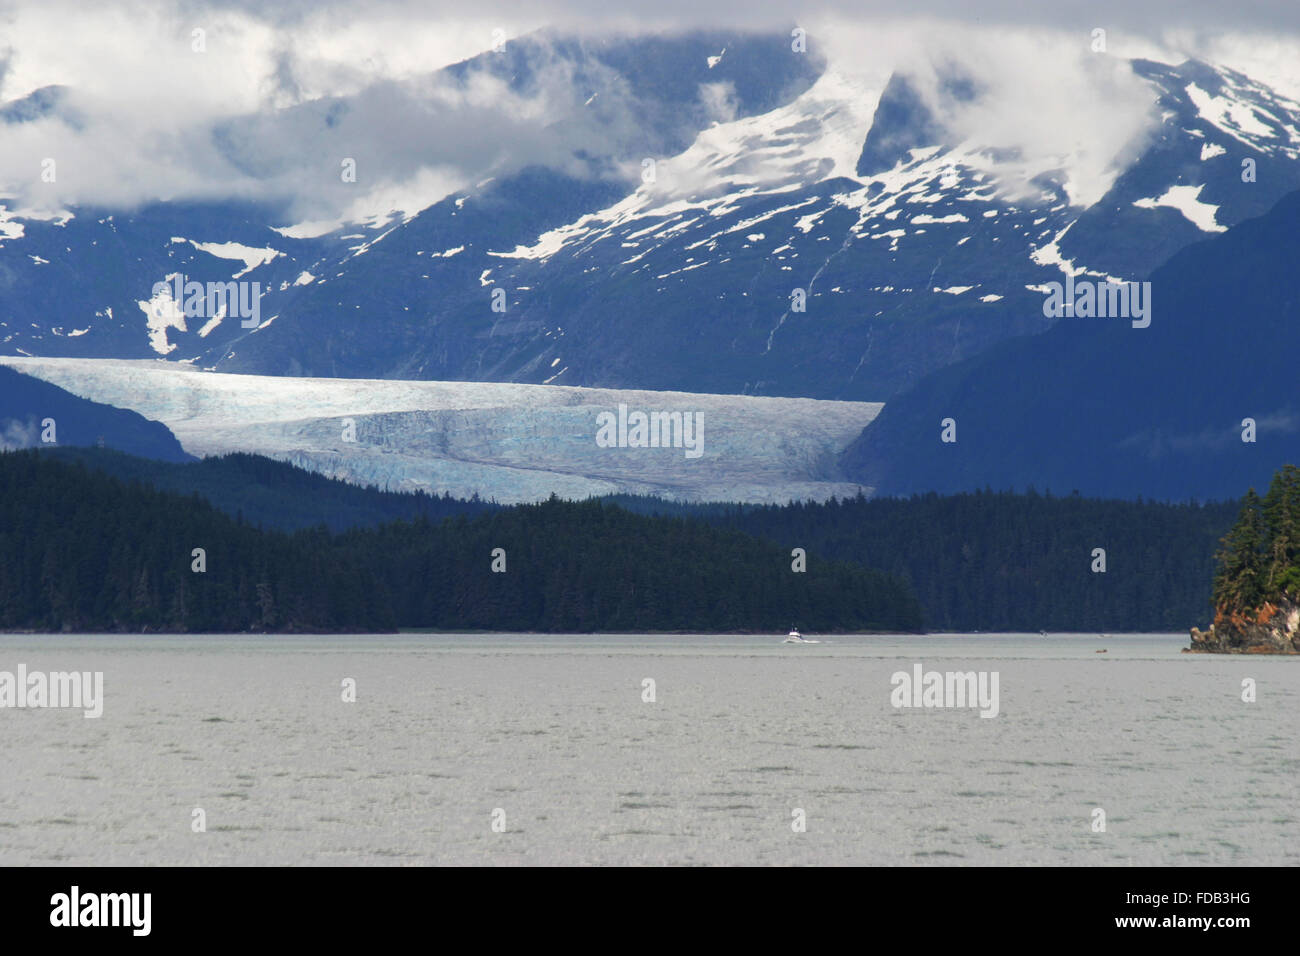 Aerial view of the Juneau Icefield/Mendenhall Glacier in Alaska - Stock Image